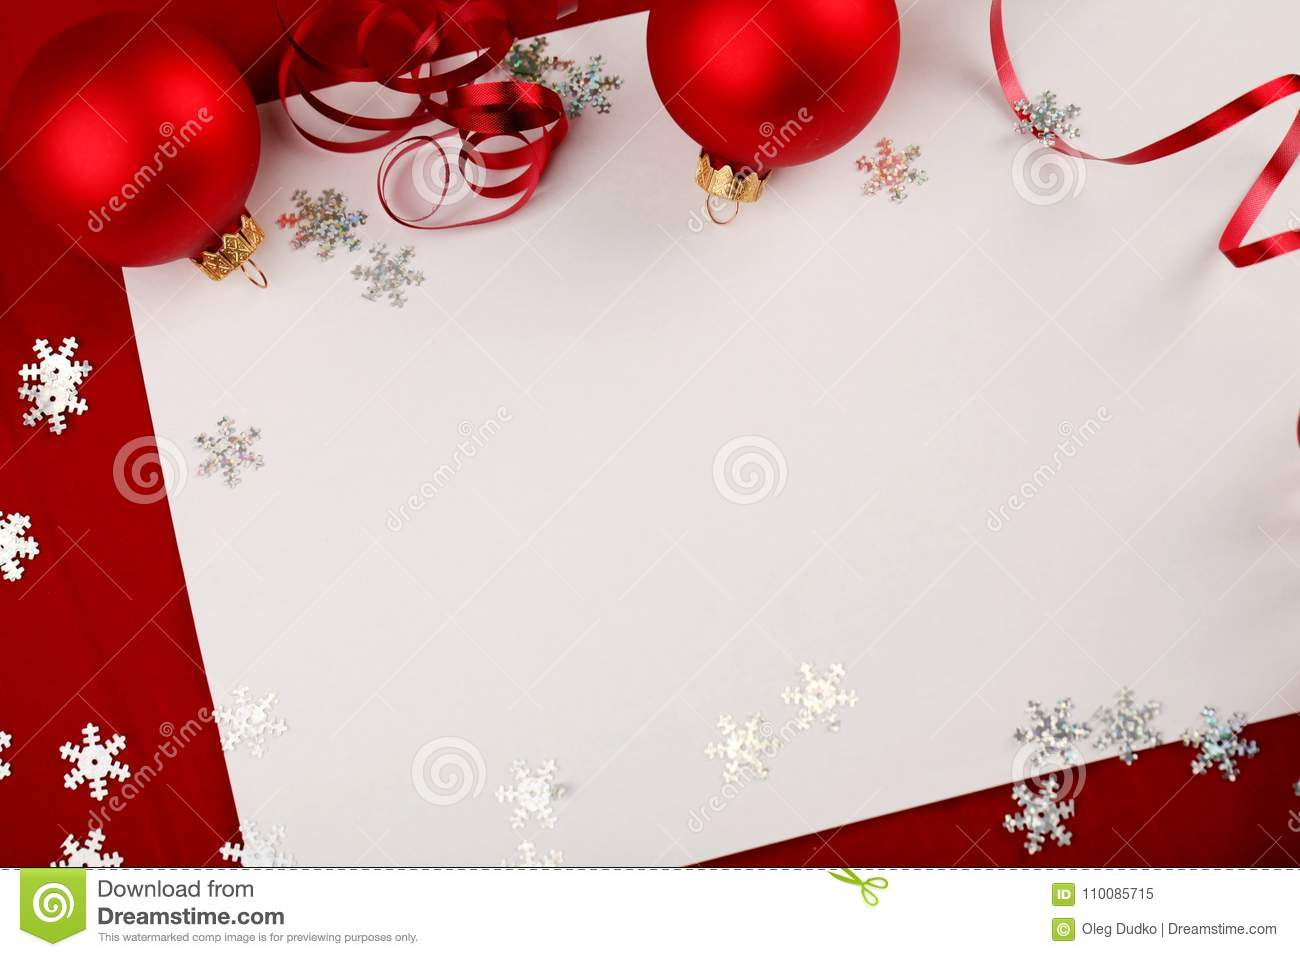 Christmas Stationery.Blank Christmas Stationery Or Cards With Ornaments Stock